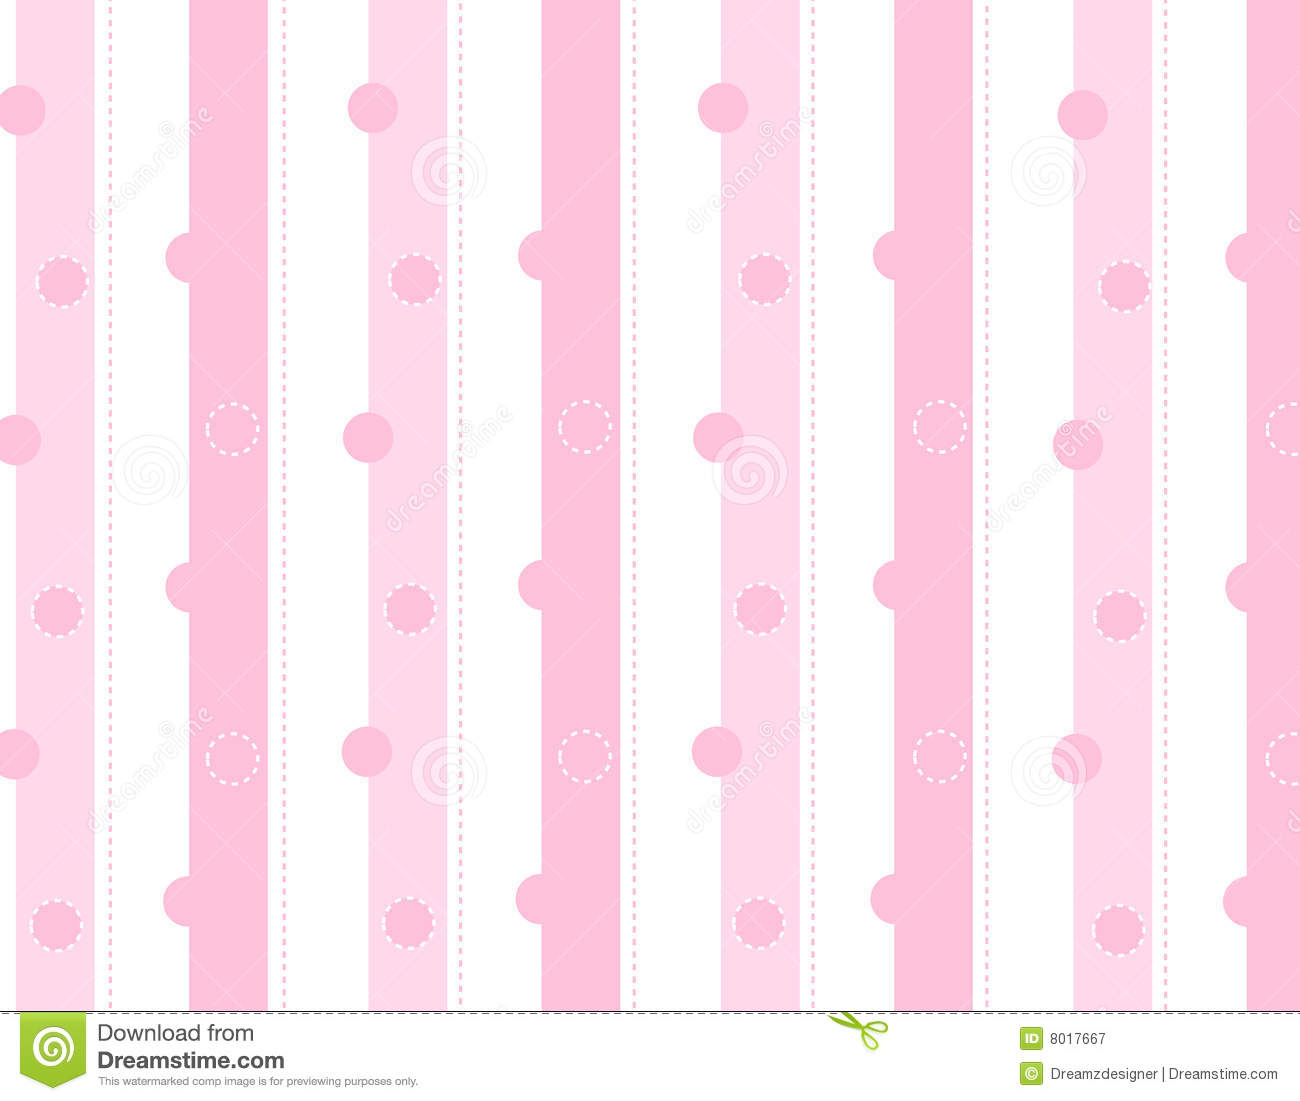 Pink striped wallpaper hd - Pastel Pink Striped Wallpaper